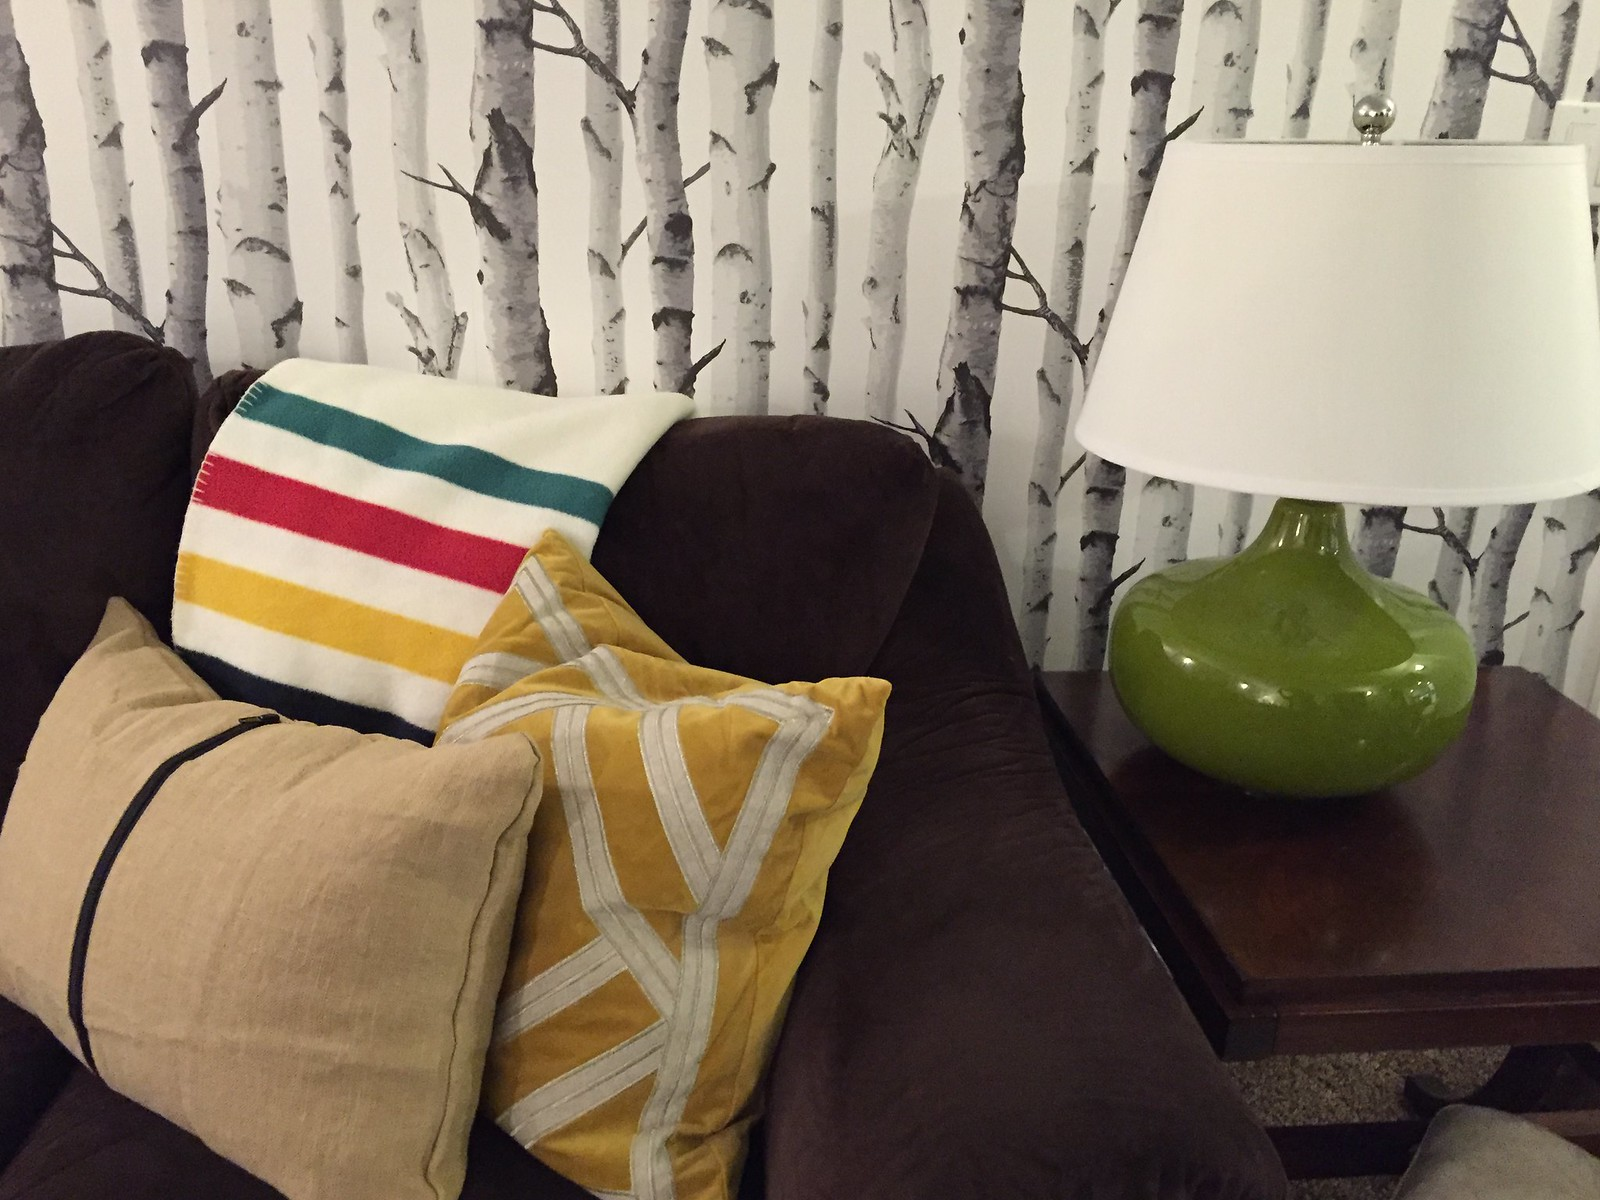 hudson bay blanket on brown sectional with green ceramic lamp on table